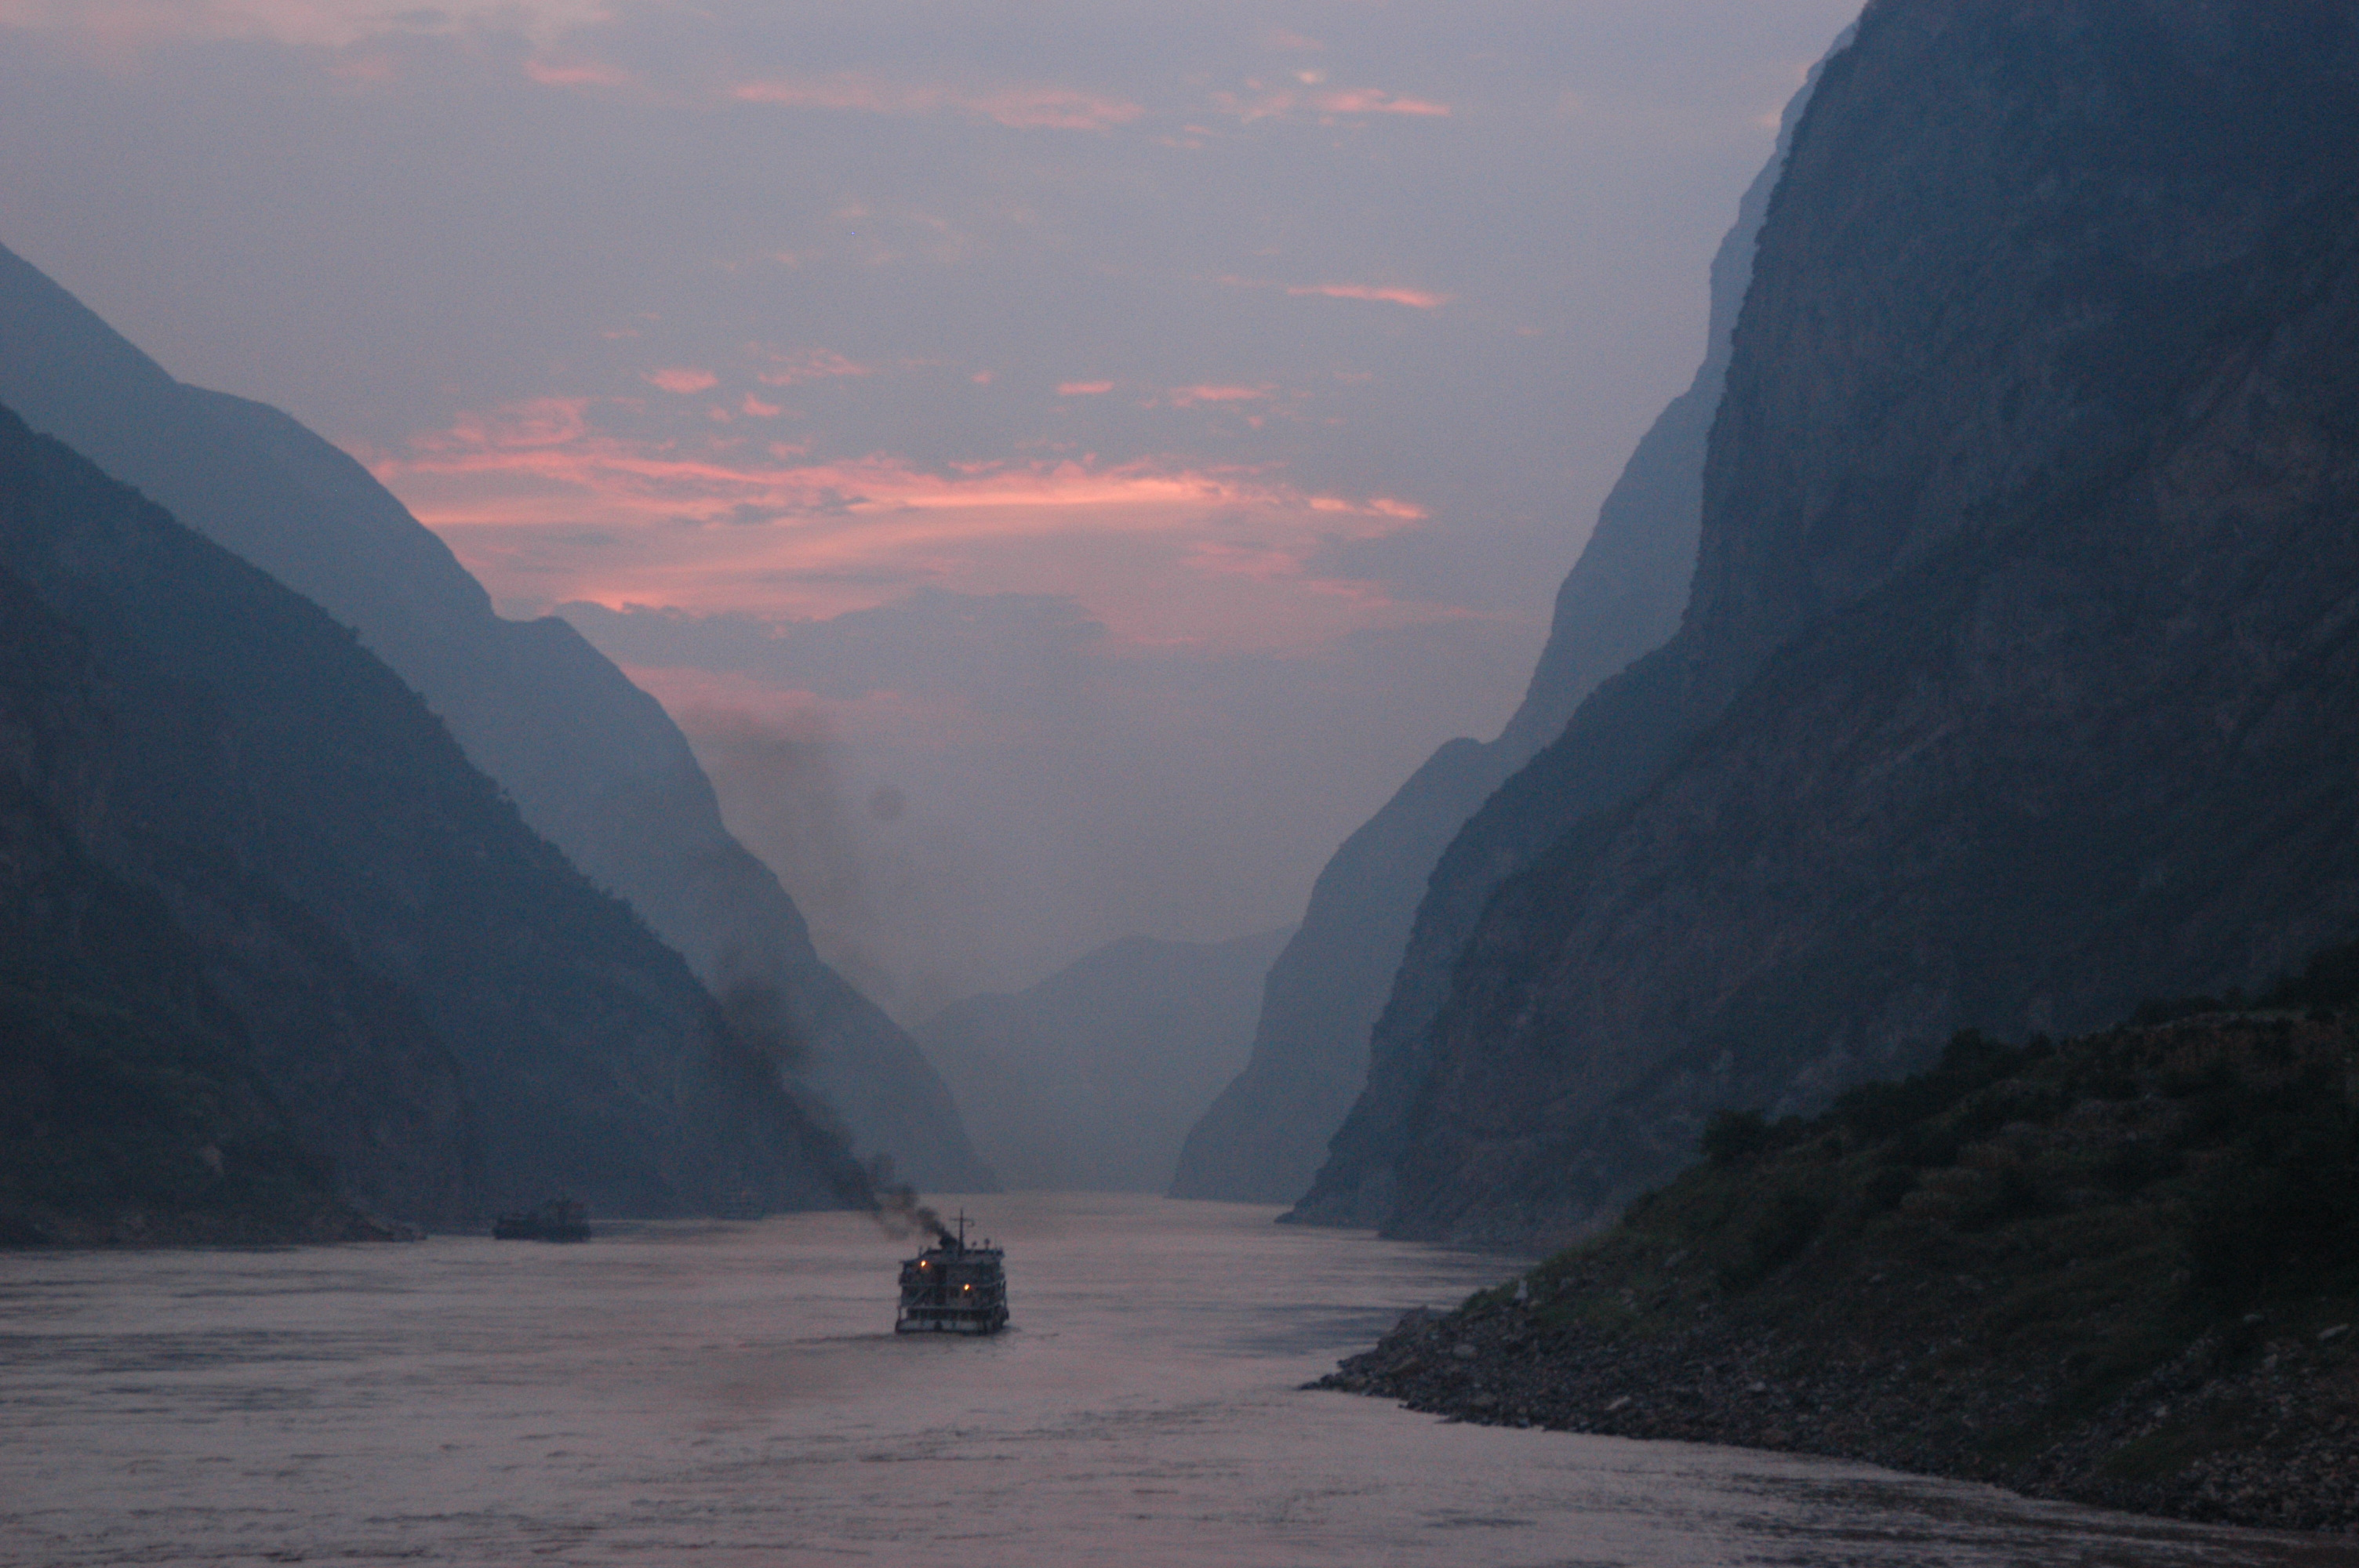 Dusk on Yangtze, view from cruise ship